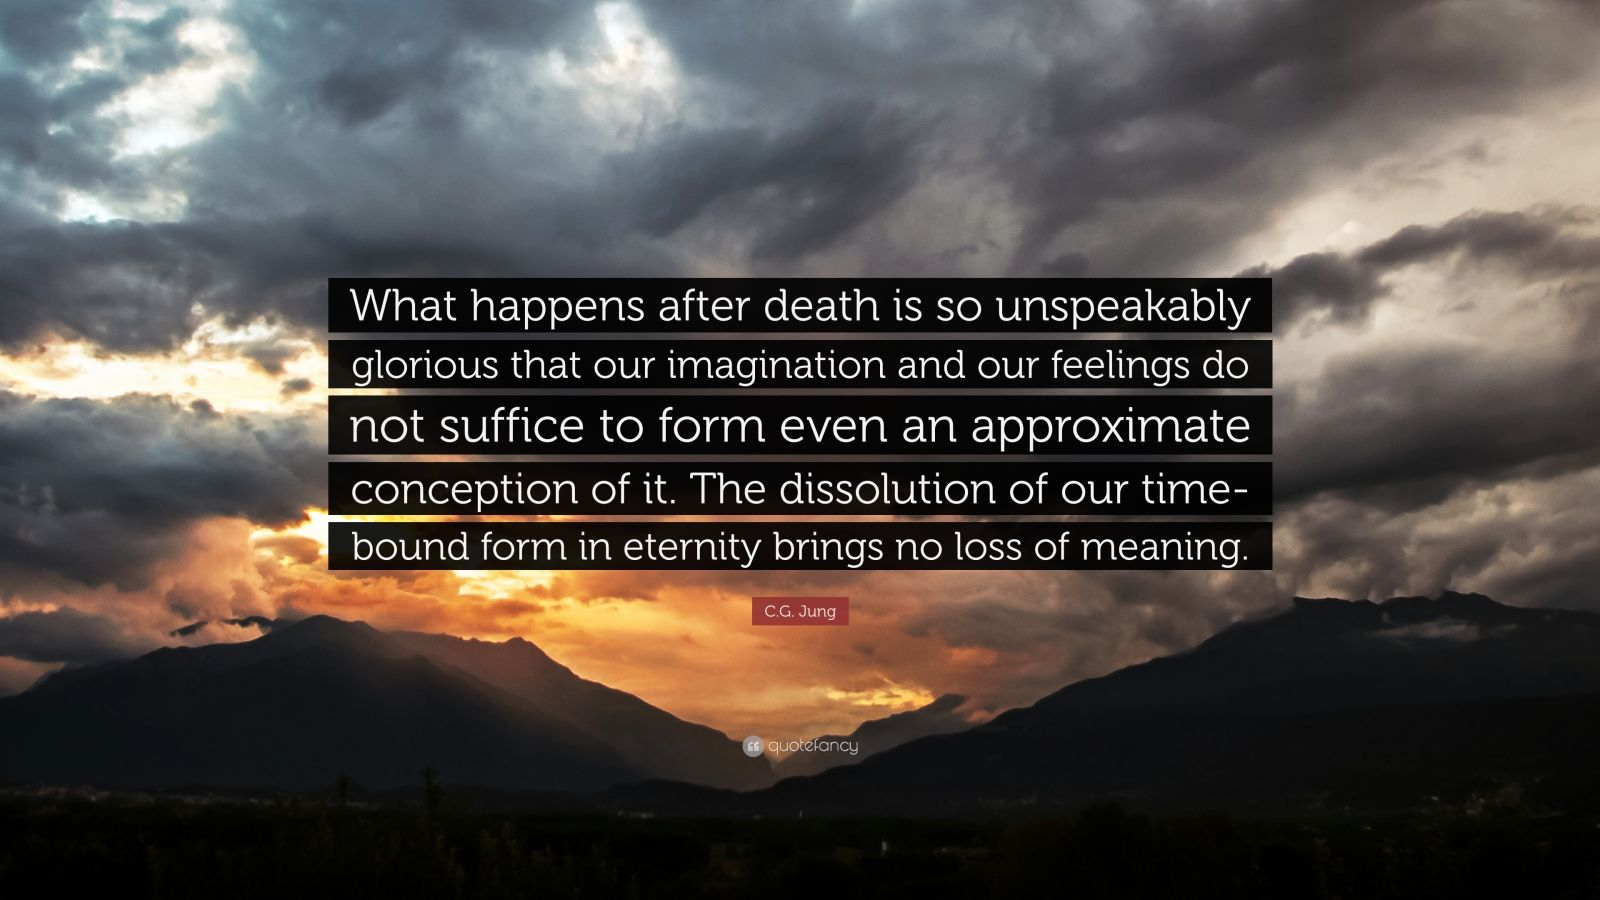 "C.G. Jung Quote: ""What happens after death is so unspeakably glorious that our imagination and our feelings do not suffice to form even an approximate conception of it. The dissolution of our time-bound form in eternity brings no loss of meaning."""